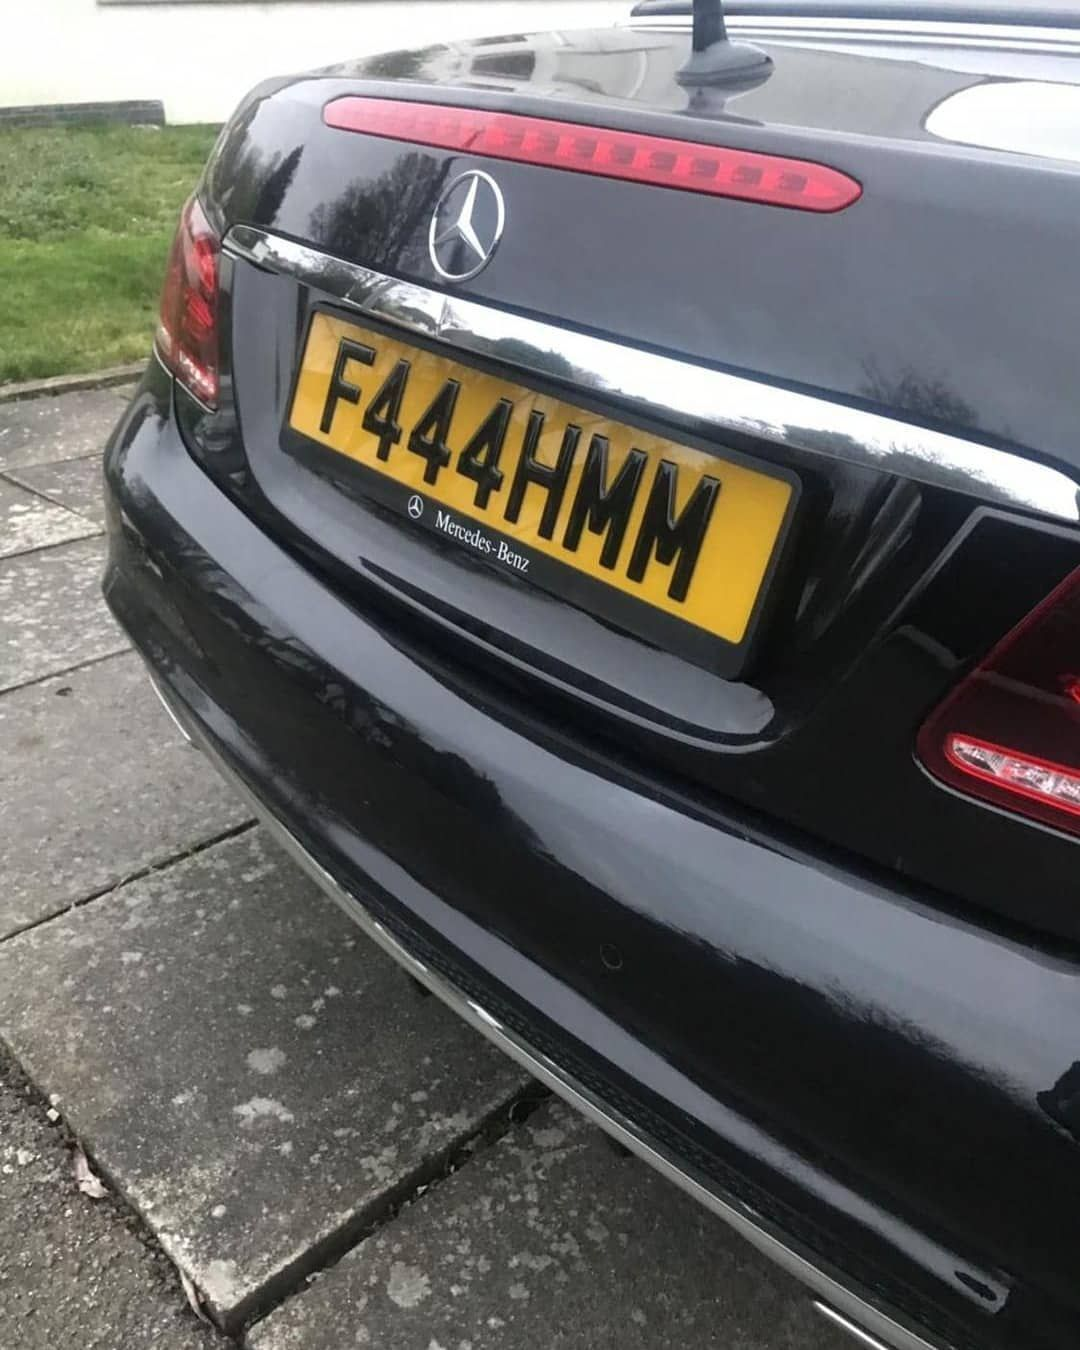 Our 3d Gloss Black Gel Number Plates Simple Little Modification To Make Your Car Lookdm For Your Our 3d Gloss Black Ge Number Plate Super Cars Private Plates